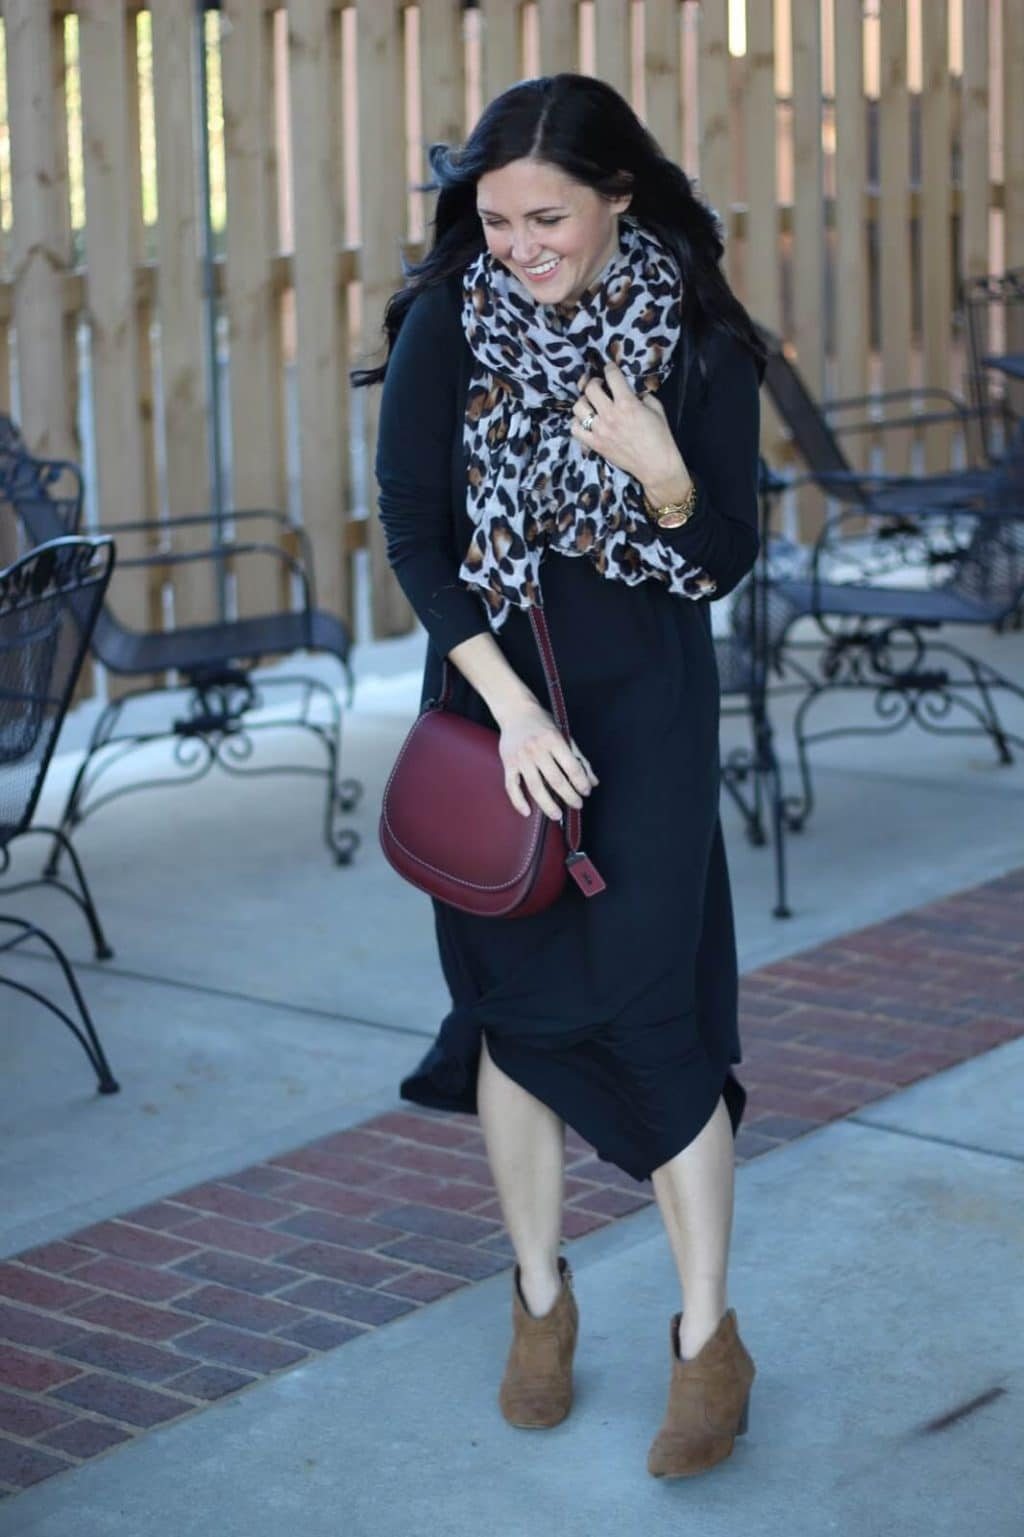 How to style a basic black maxi dress